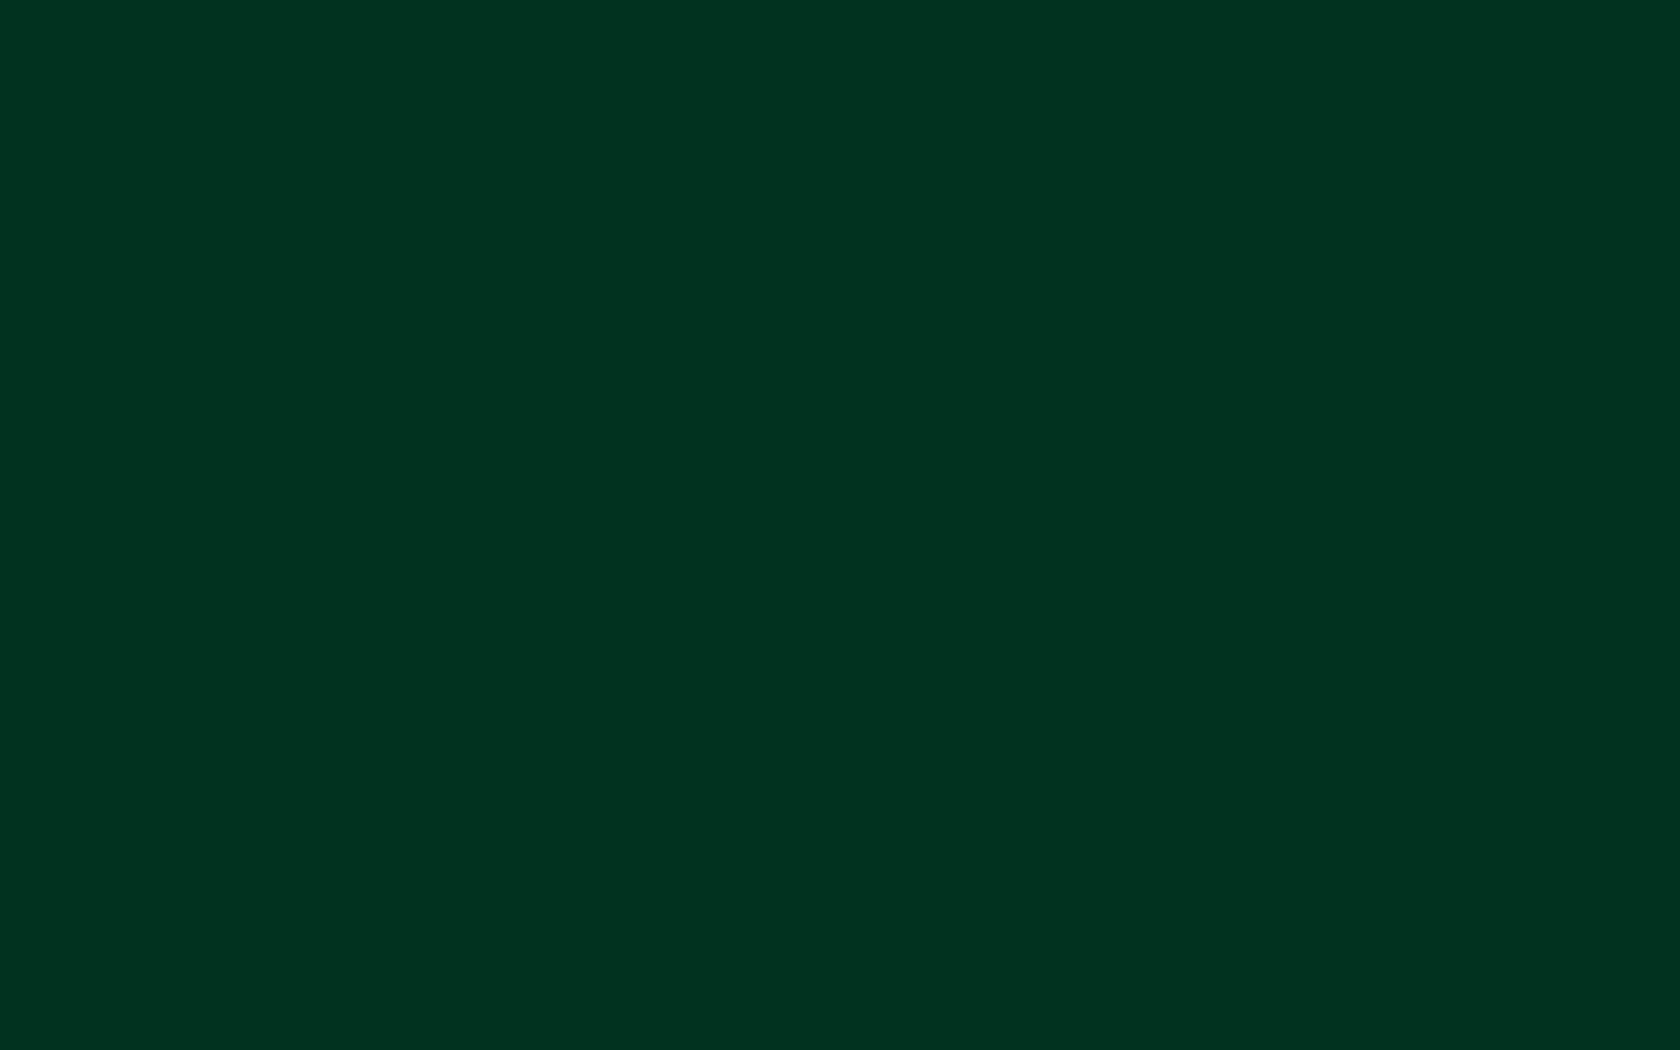 1680x1050 Dark Green Solid Color Background